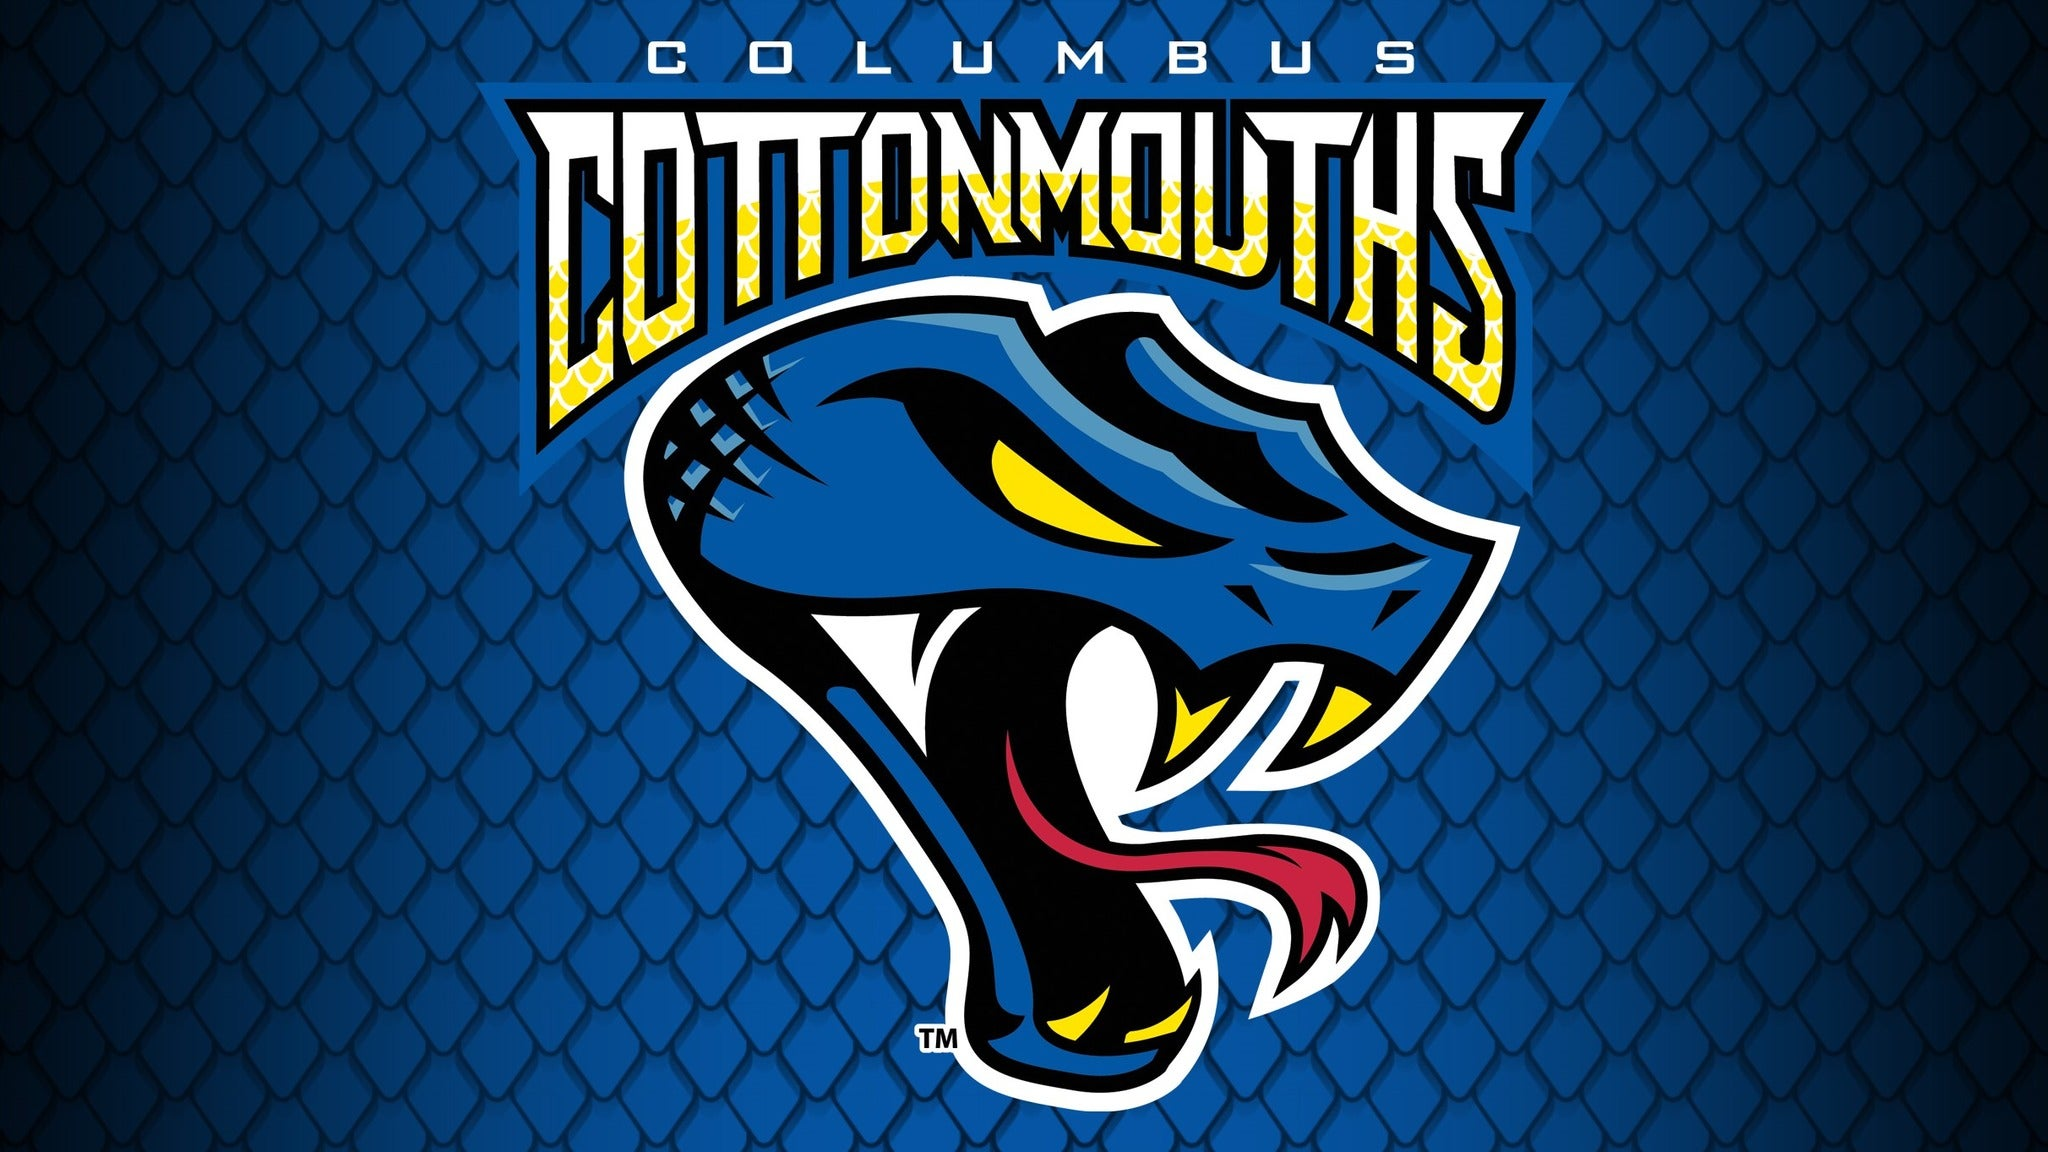 Columbus Cottonmouths vs. Macon Mayhem